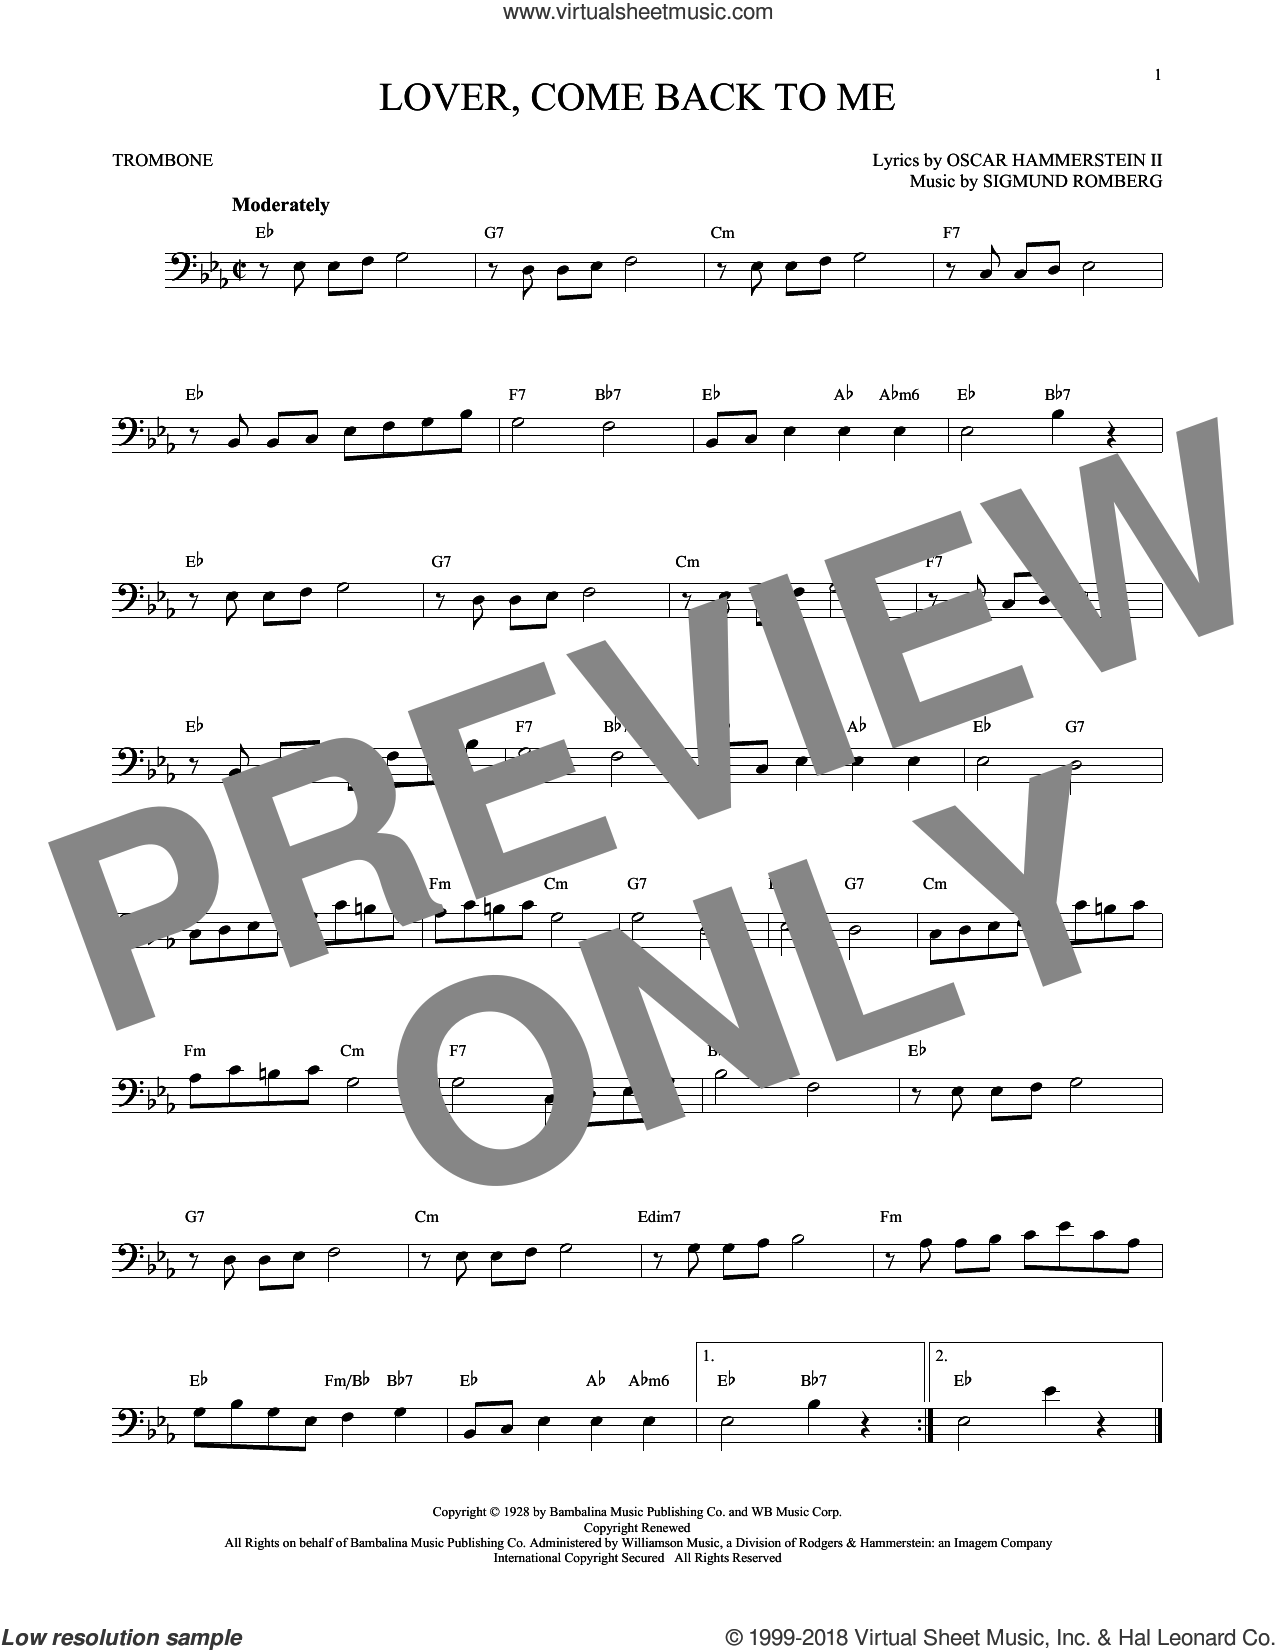 Lover, Come Back To Me sheet music for trombone solo by Oscar II Hammerstein and Sigmund Romberg, intermediate skill level